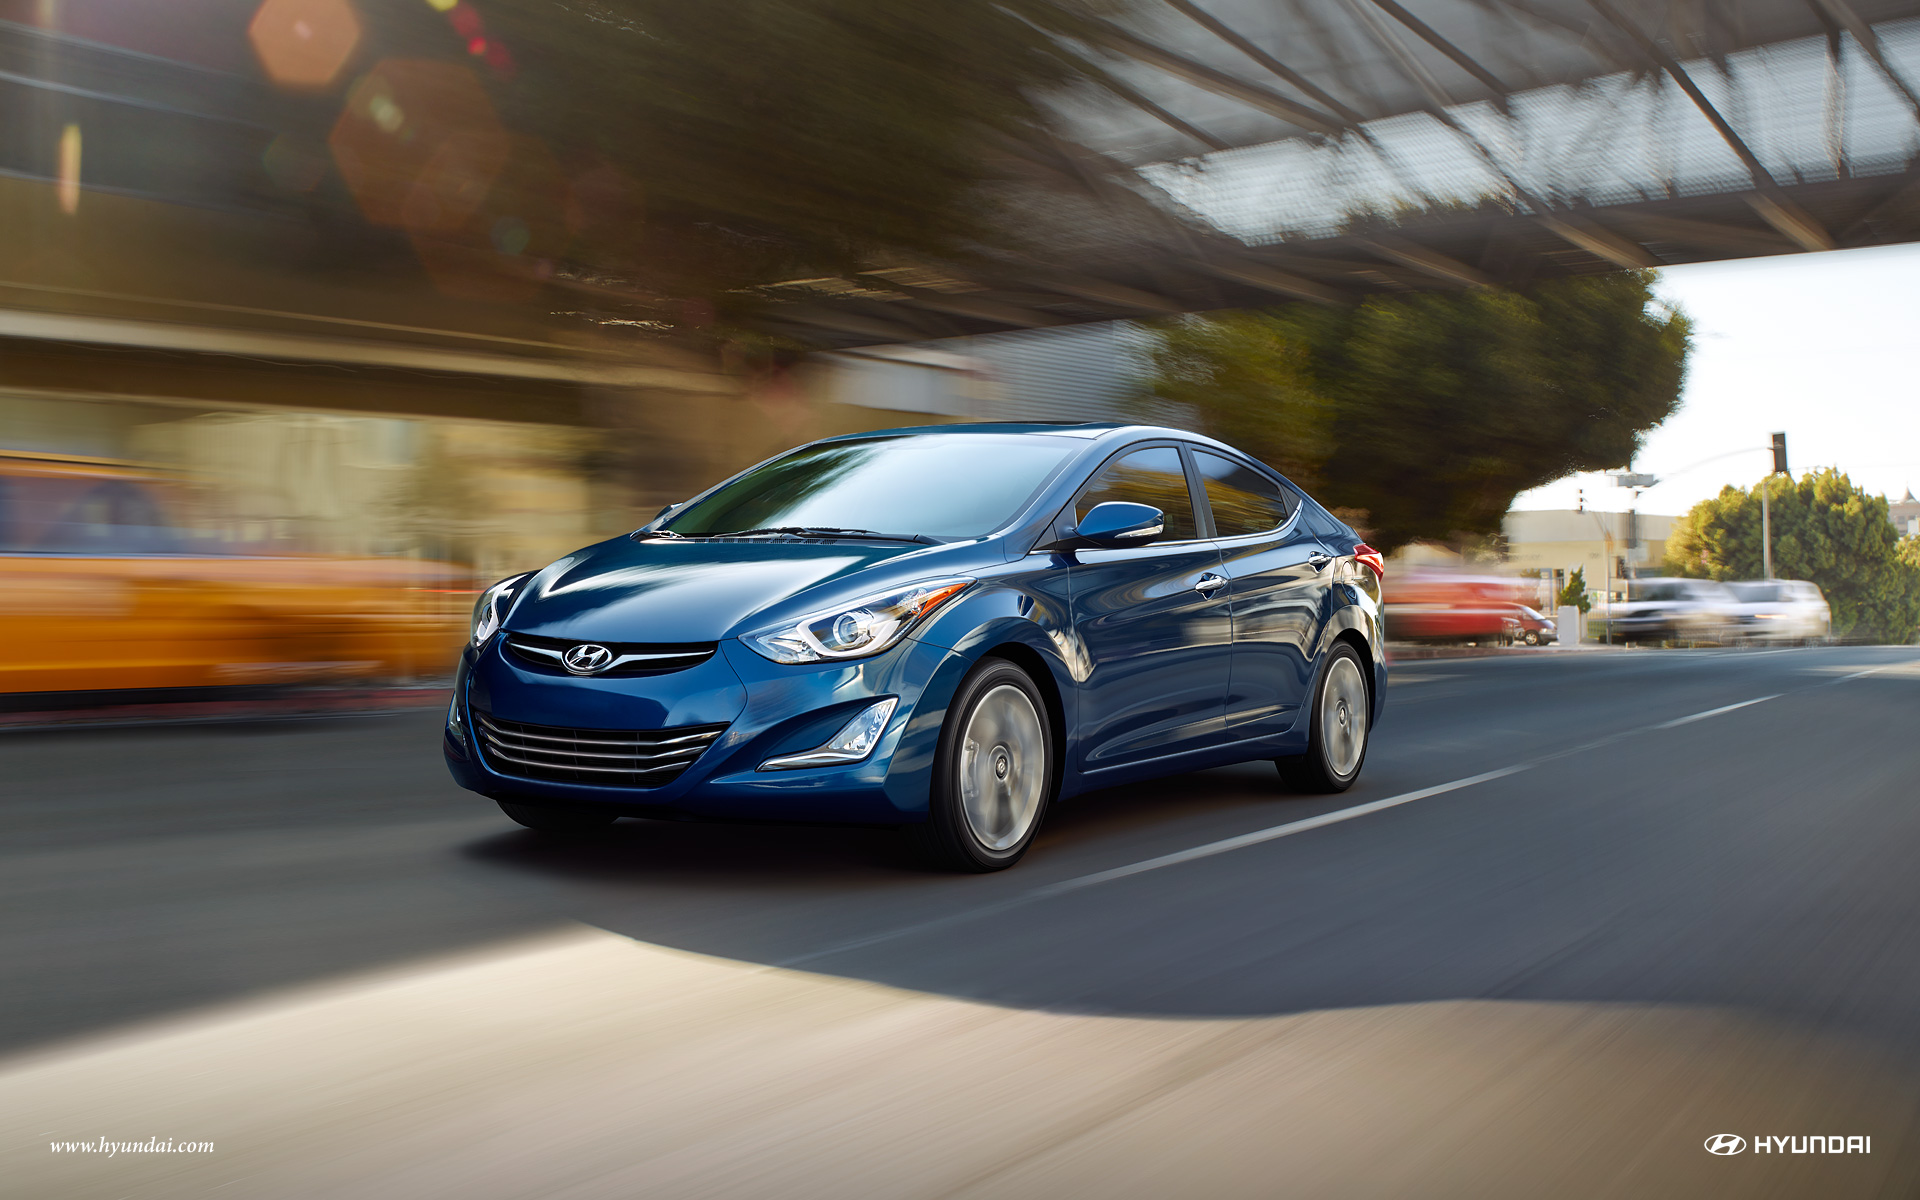 2014: The most successful year for Hyundai Motor India